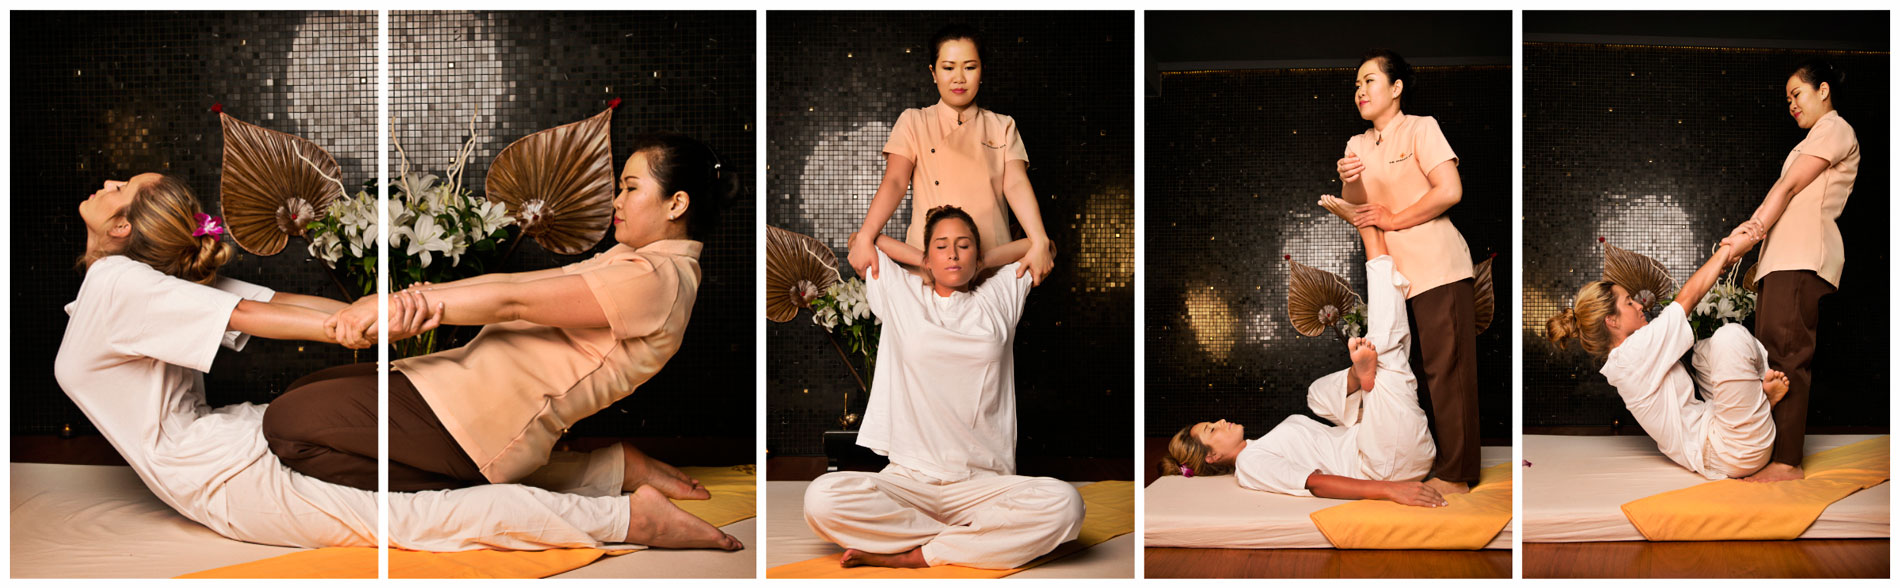 collage-thai-massage